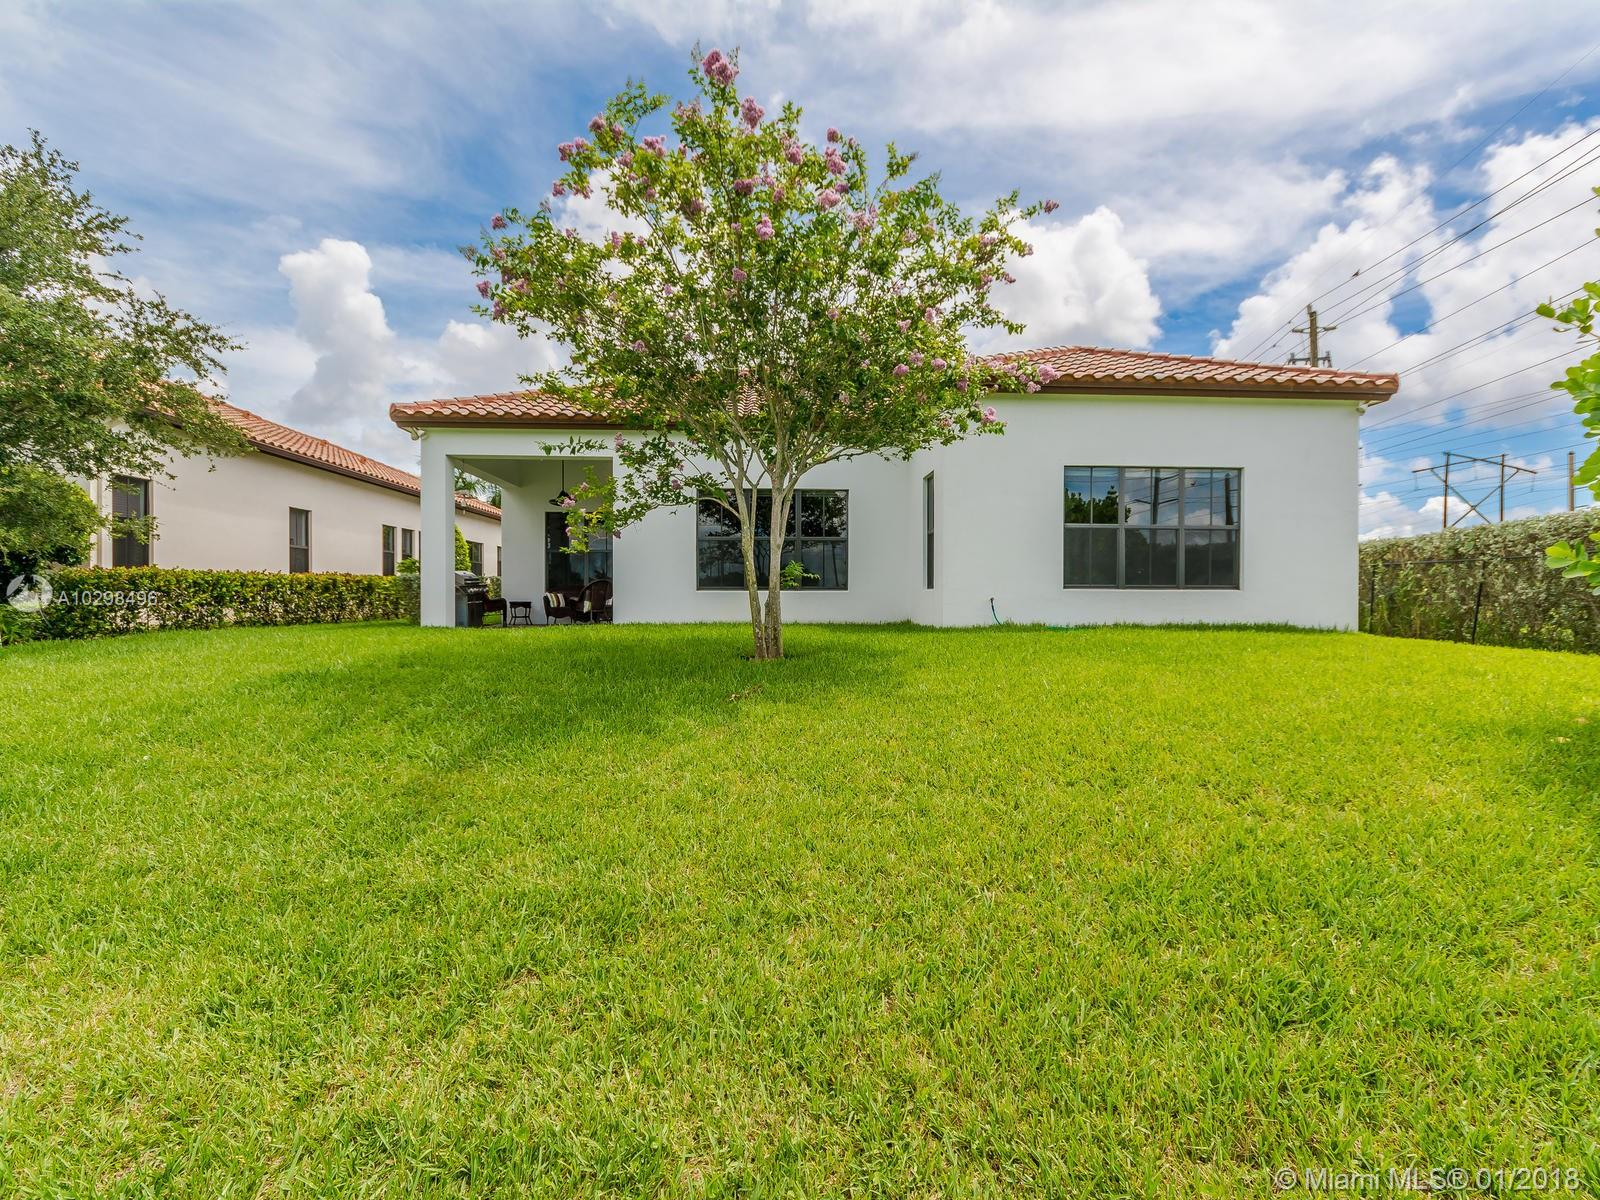 8506 NW 38th St, Cooper City , FL 33024